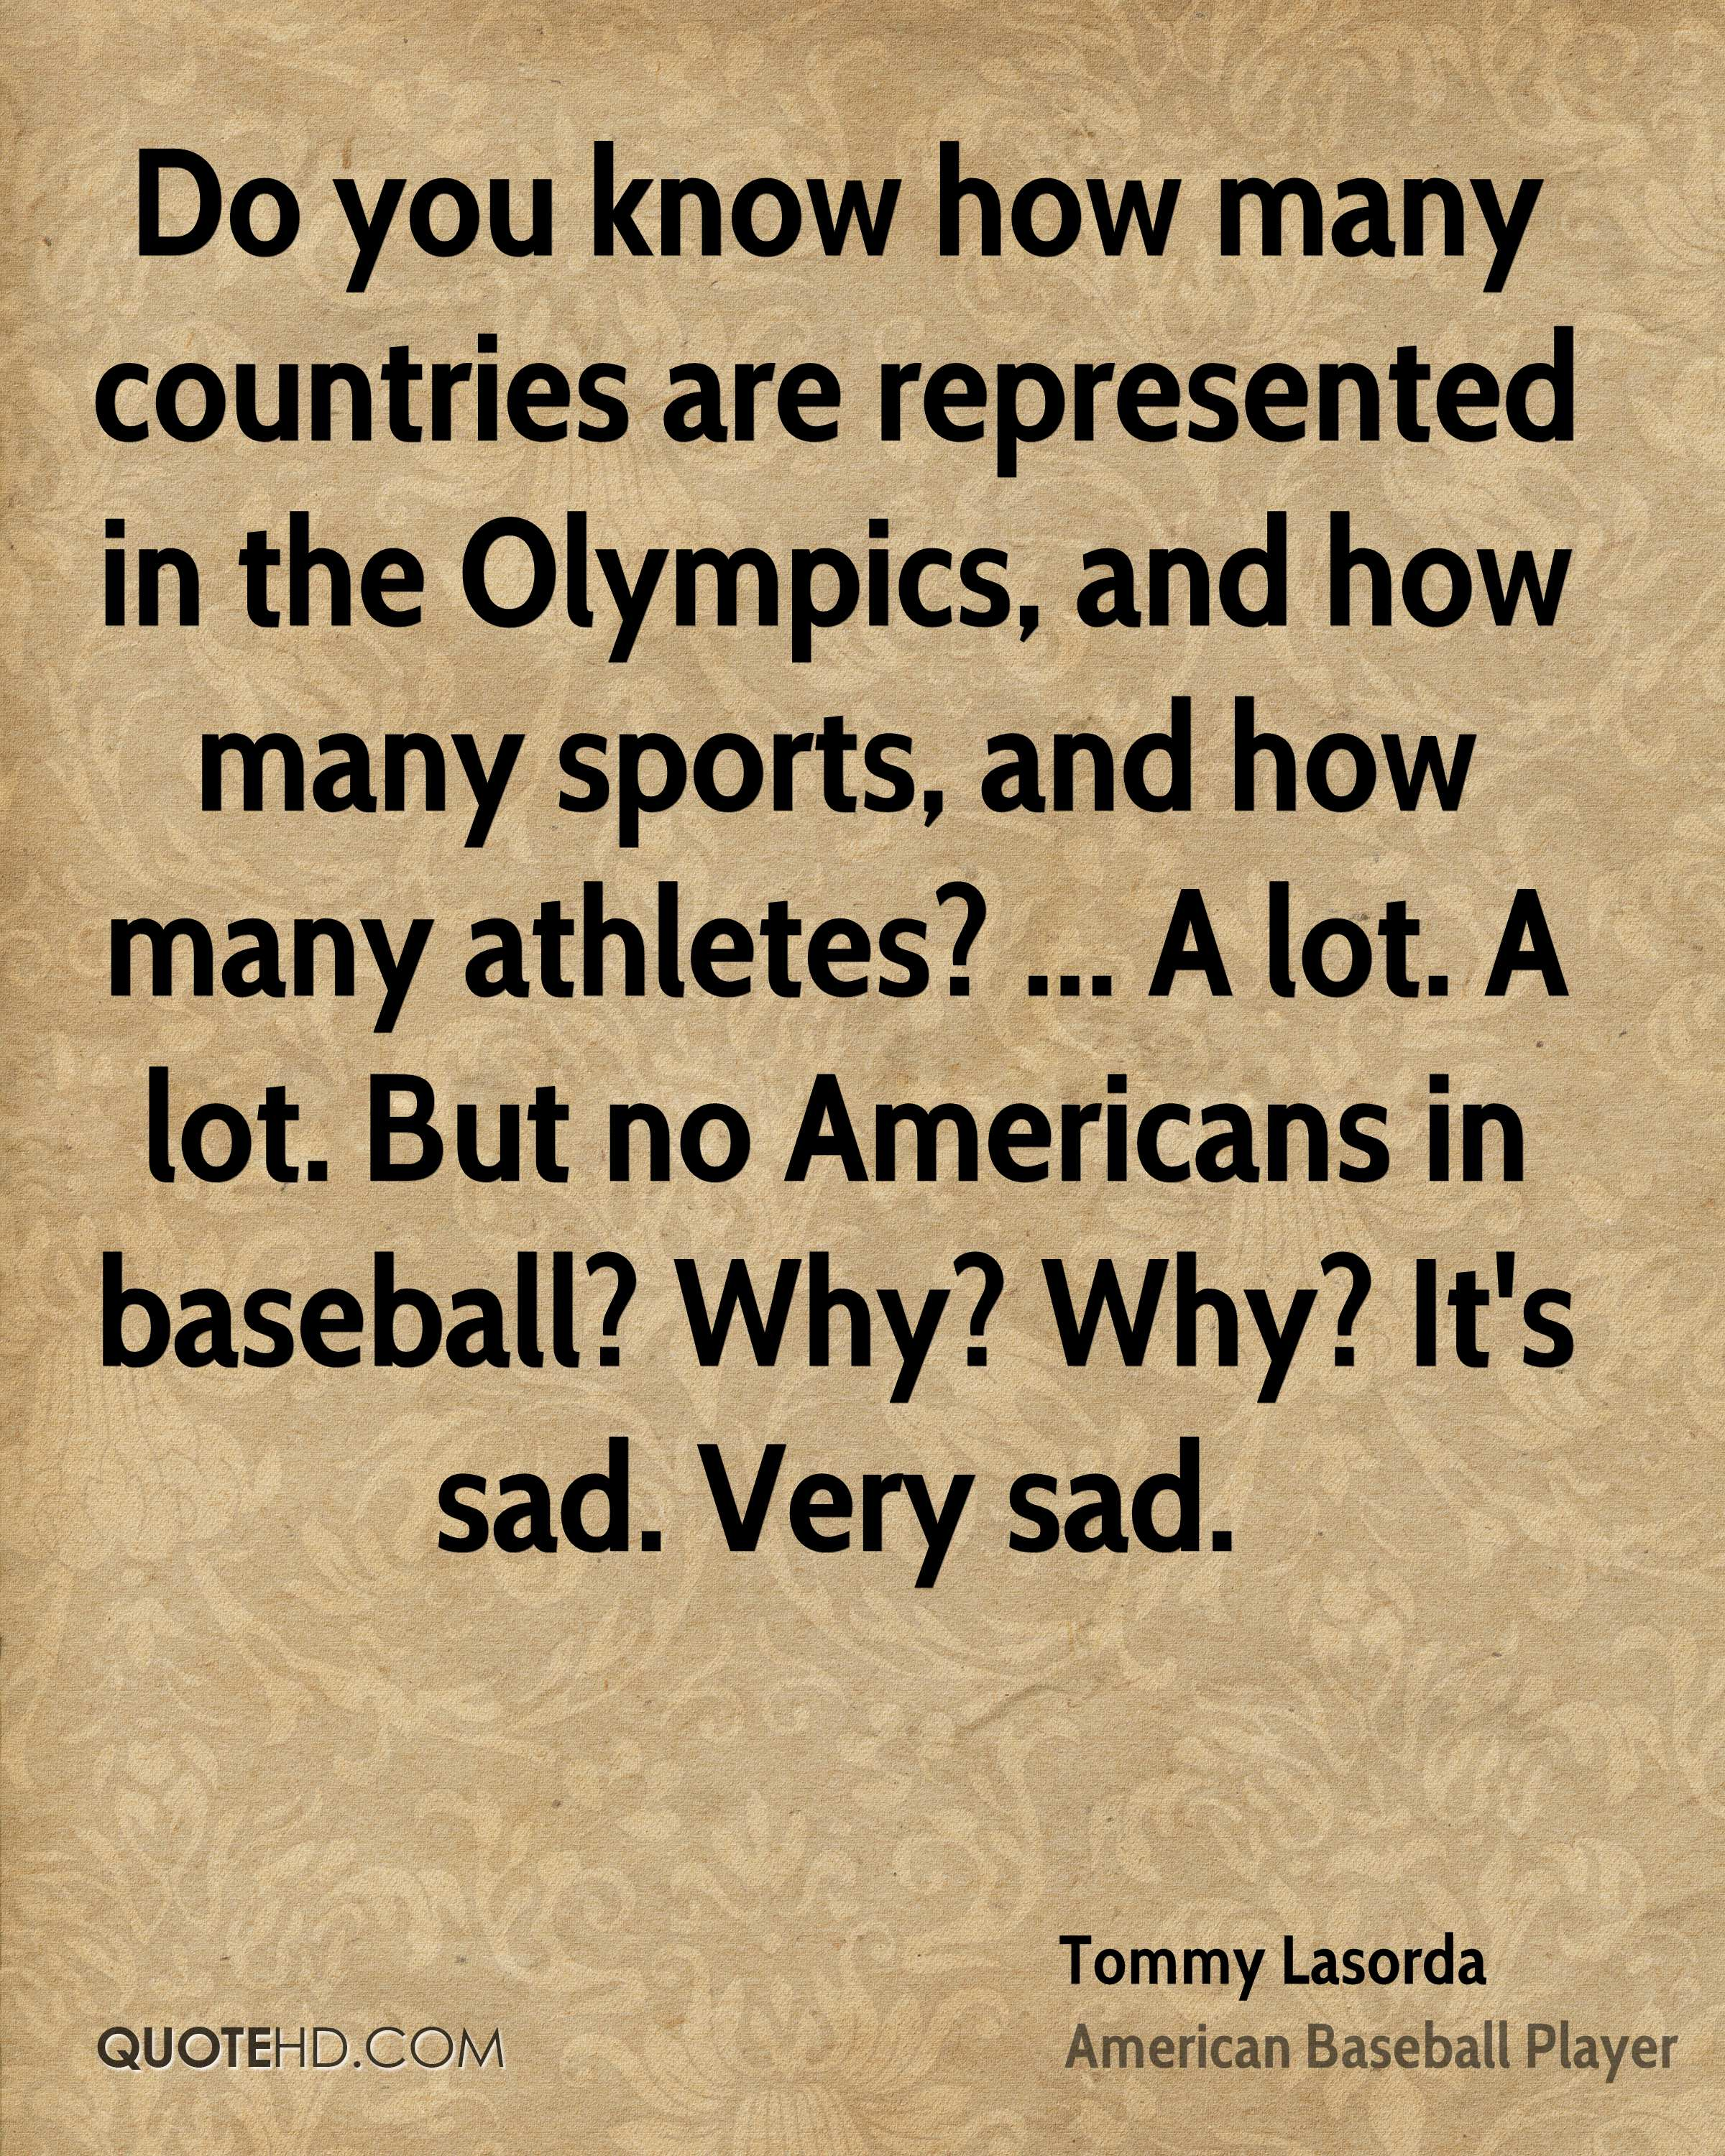 Do you know how many countries are represented in the Olympics, and how many sports, and how many athletes? ... A lot. A lot. But no Americans in baseball? Why? Why? It's sad. Very sad.